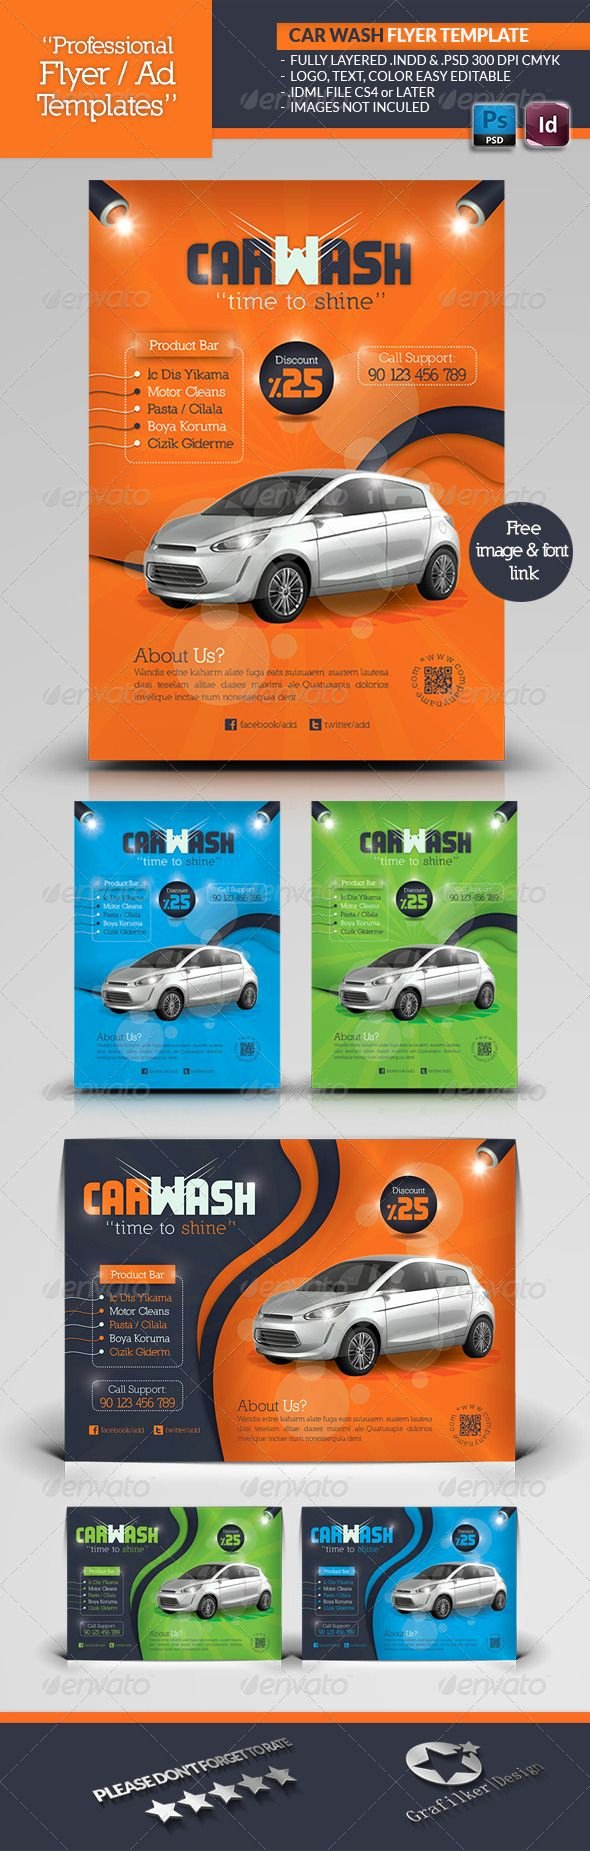 Car Wash Flyers Template Inspirational 25 Best Ideas About Car Wash Business On Pinterest